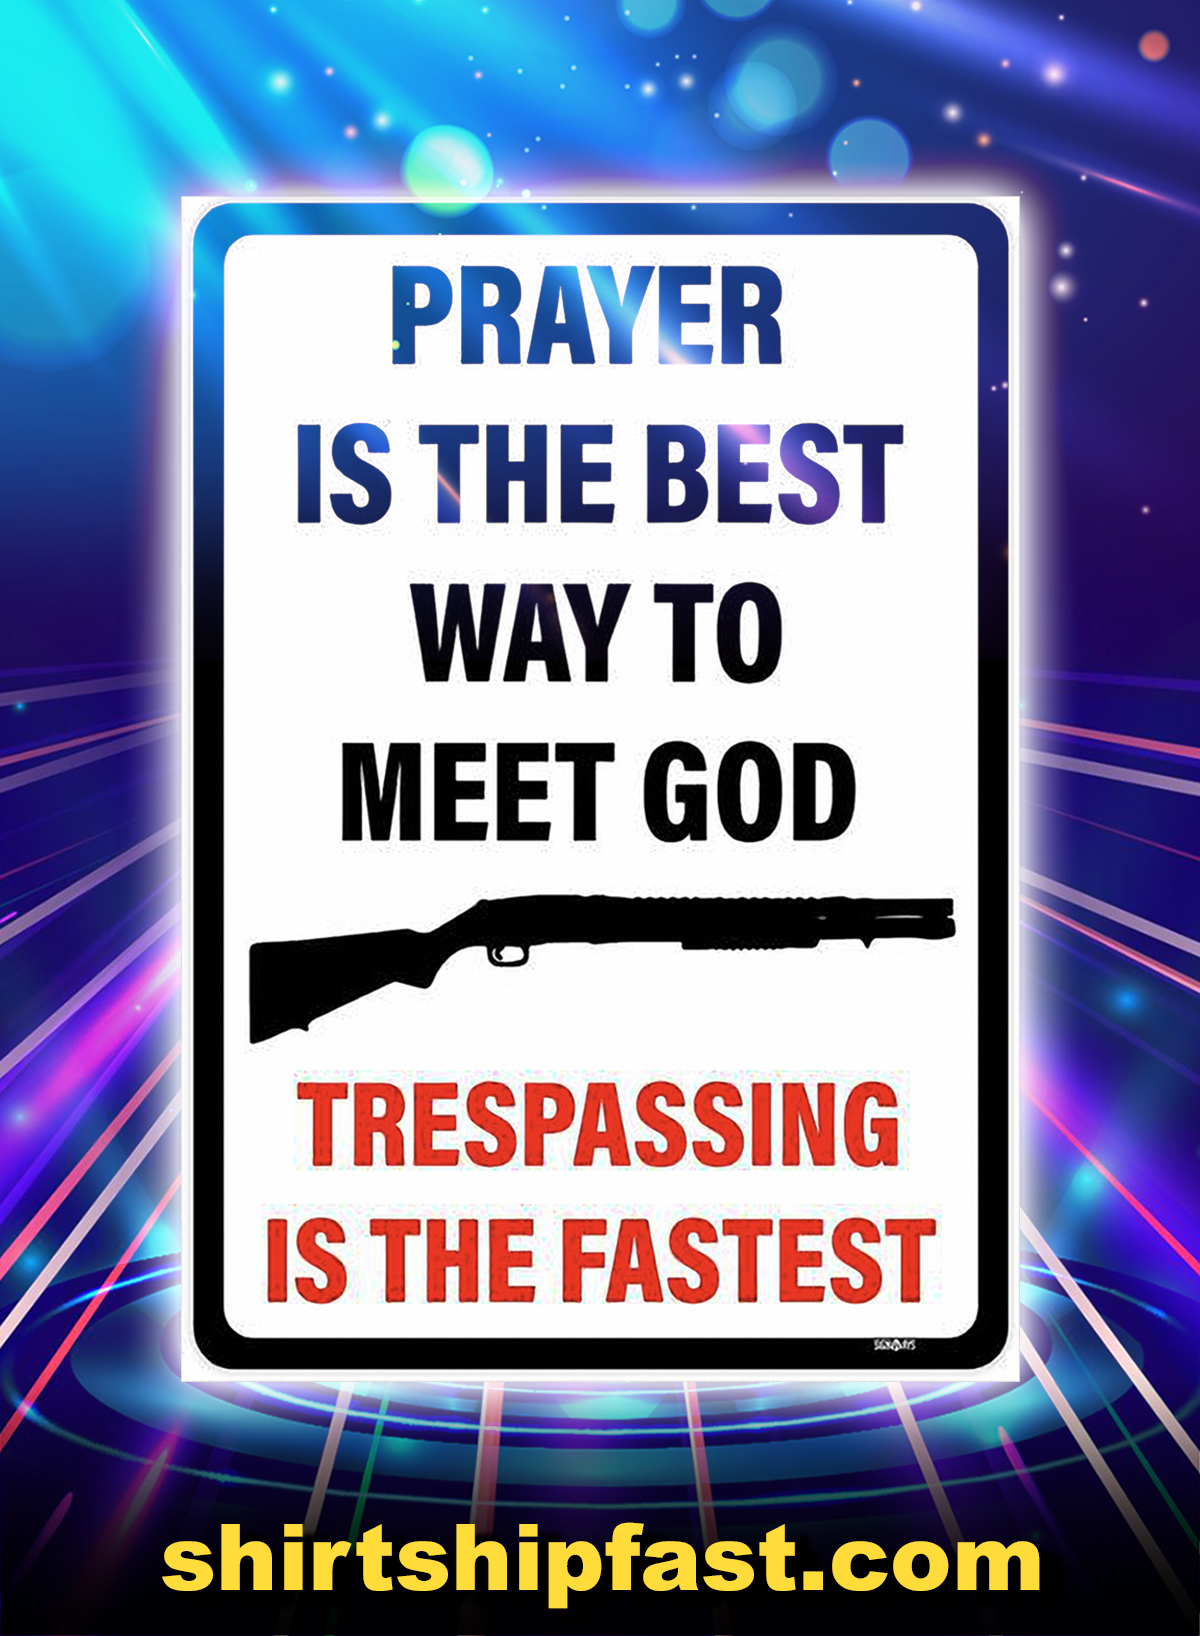 Prayer is the best way to meet god trespassing is the fastest sign poster - A1